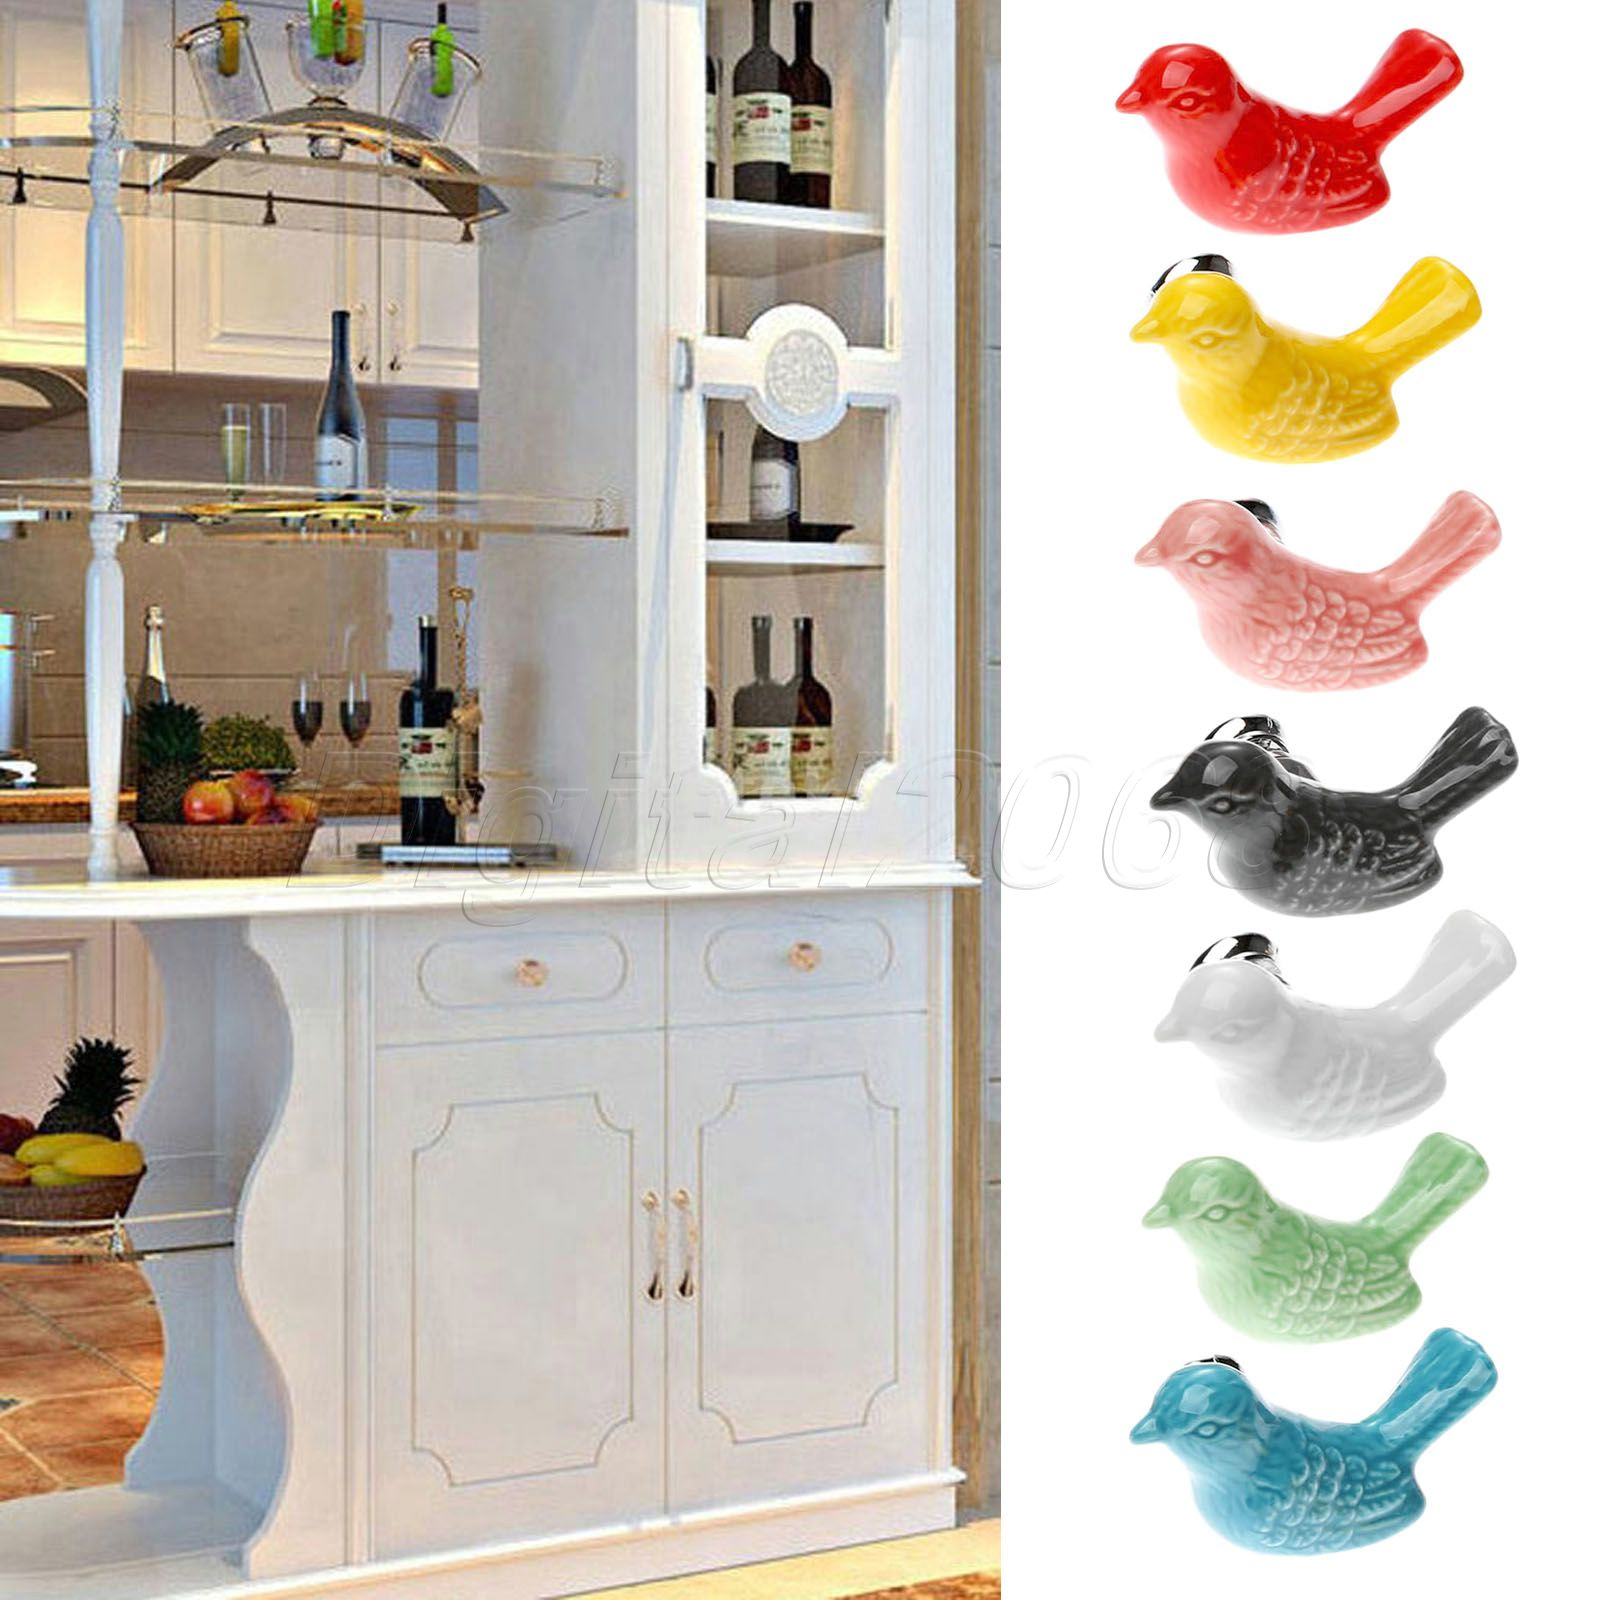 New Hot Ceramic Bird Kitchen Cabinet Cupboard Door Handles Drawer Knobs Wardrobe Pulls Kitchen Furniture Home Pull Handle hot brown handle single hole leather door handles cabinet cupboard drawer pull knobs furniture kitchen accessories 96 160 192mm